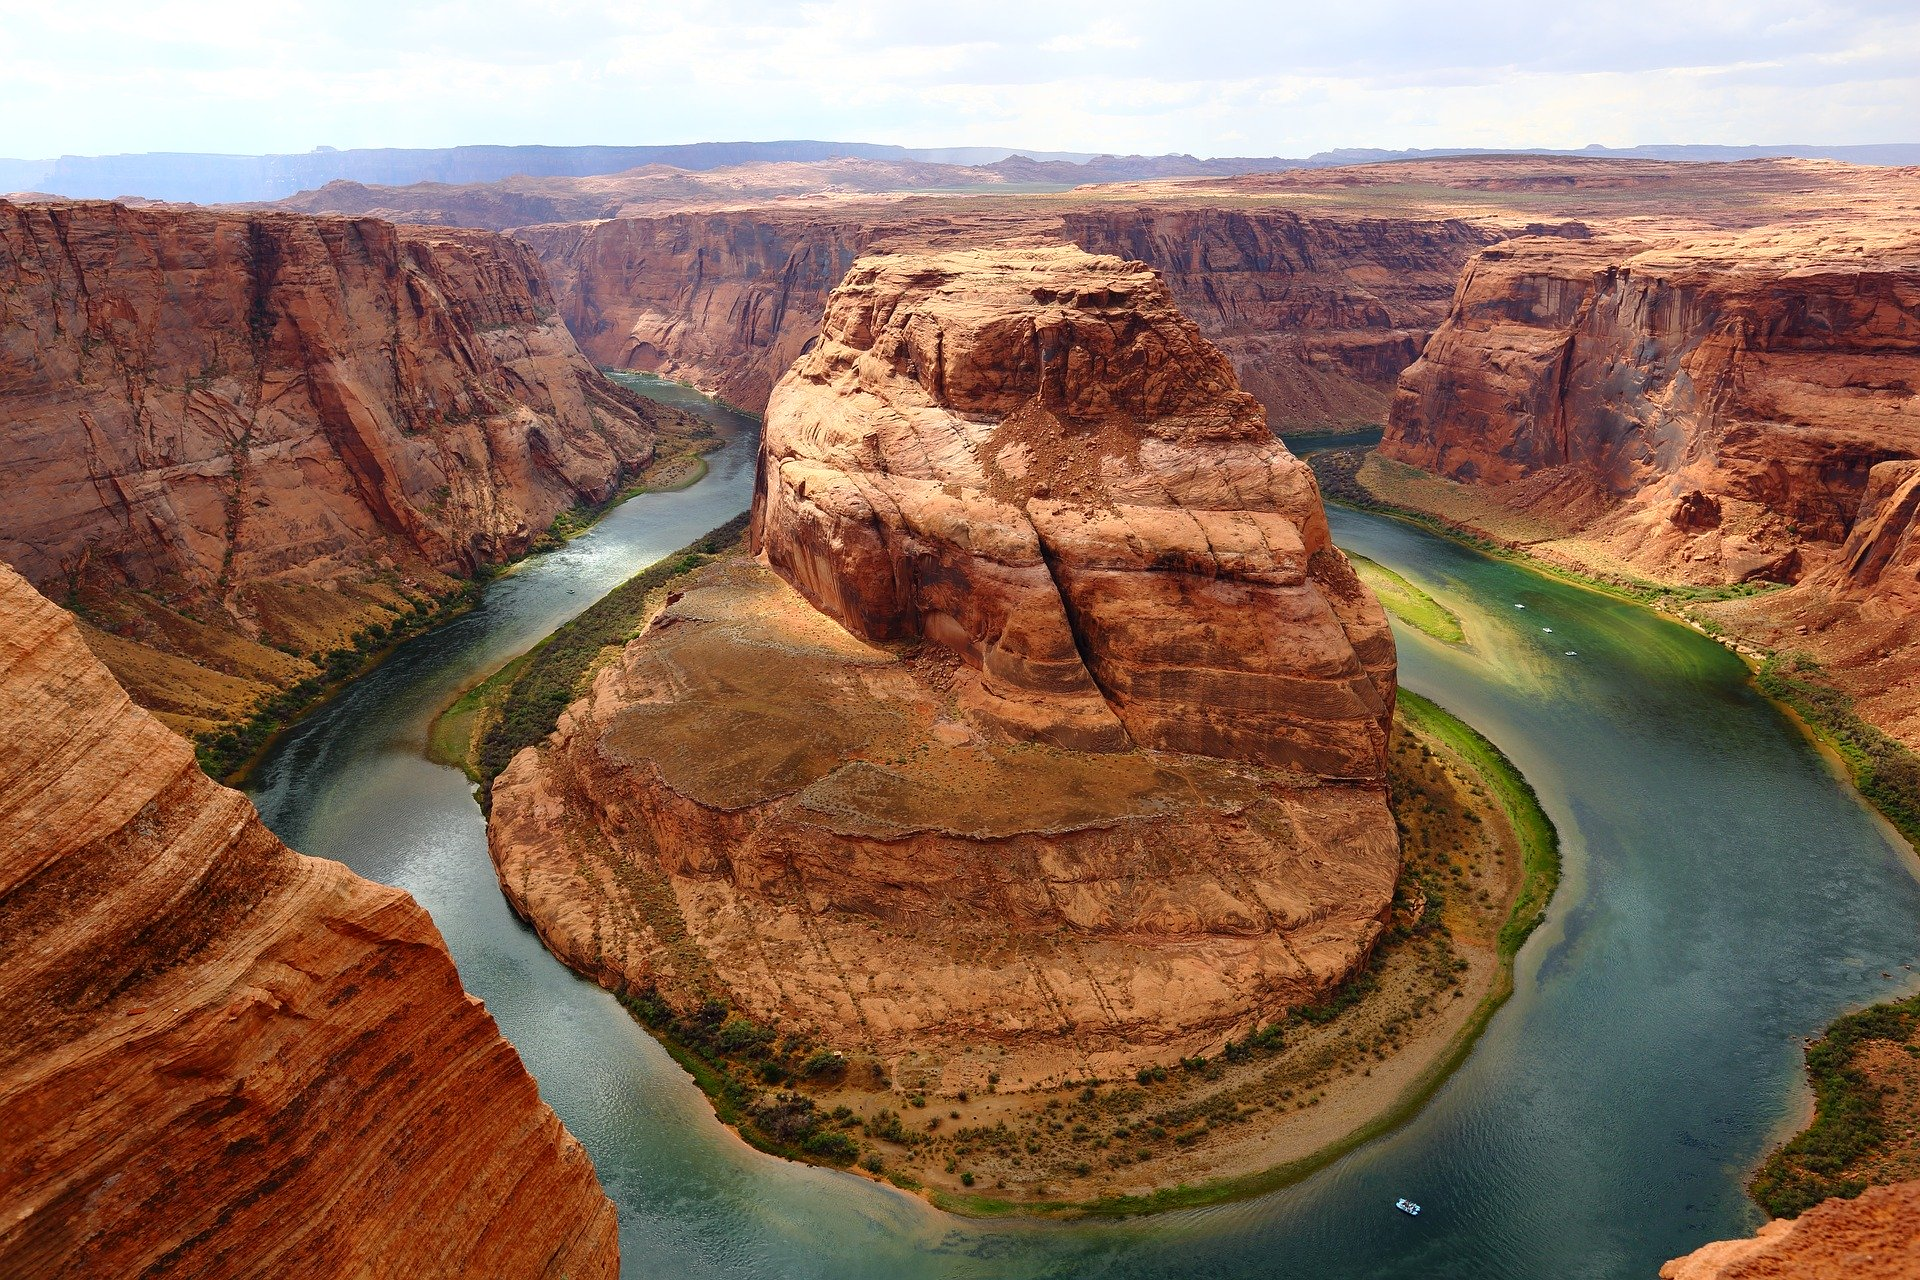 horseshoe-bend-1908283_1920